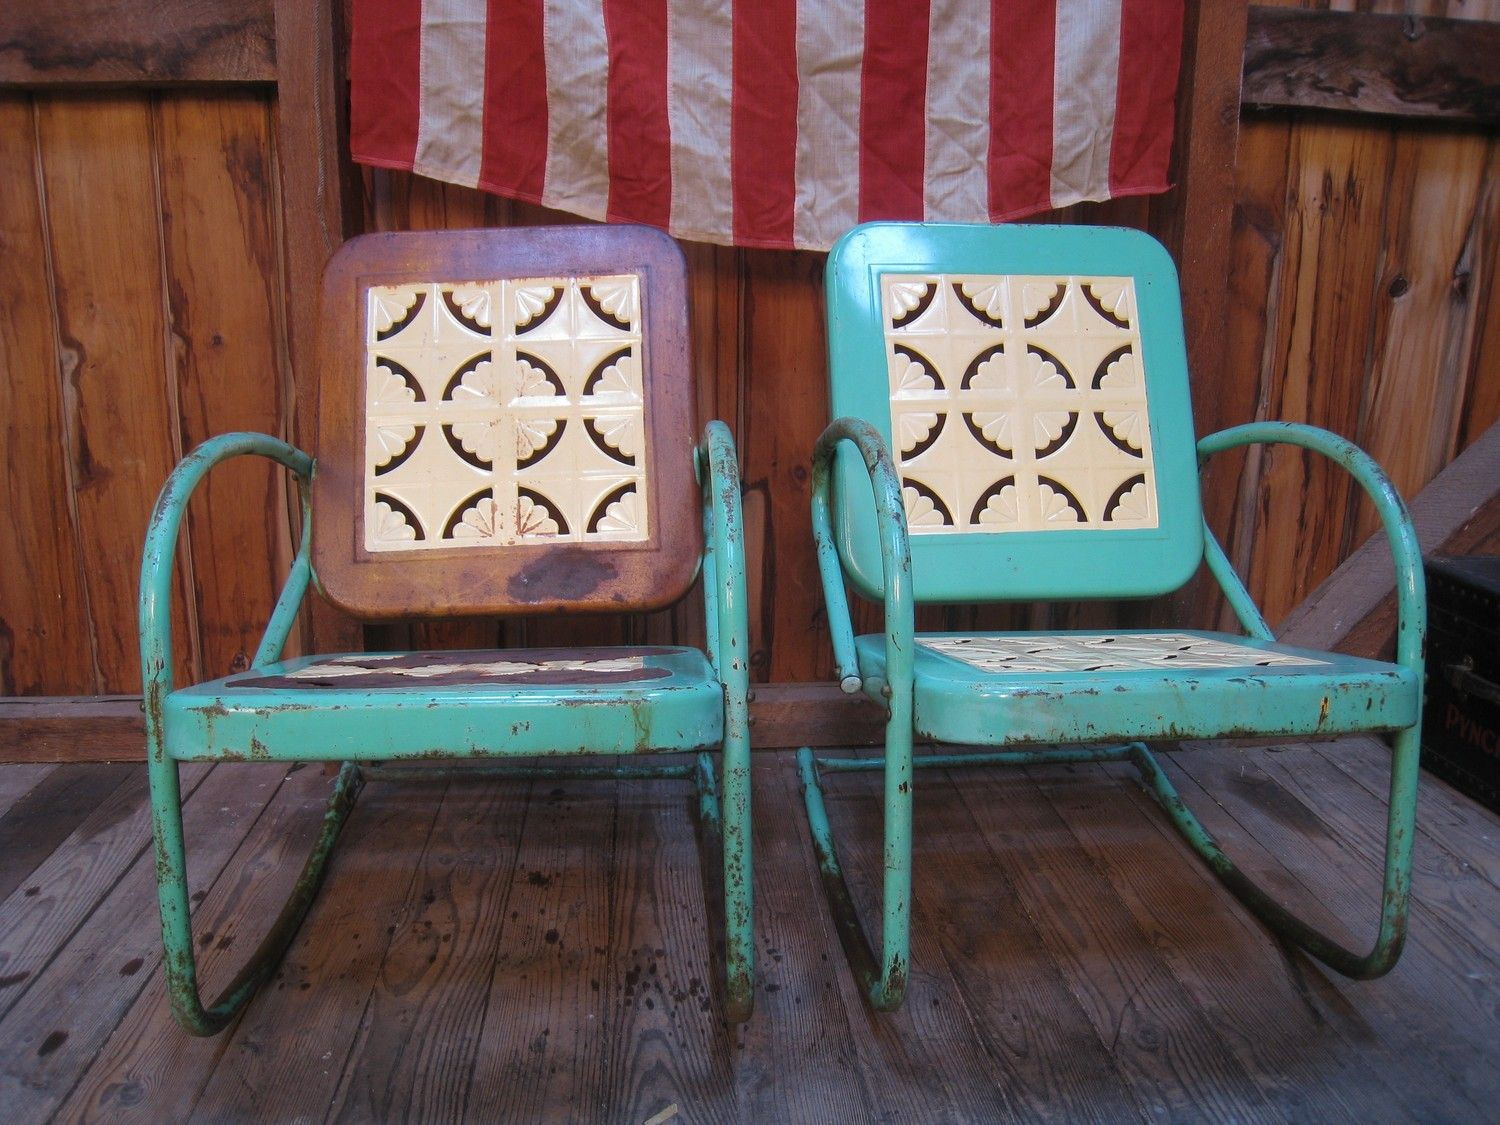 Vintage 1950s Metal Lawn Porch Glider Patio Chairs - Vintage 1950s Metal Lawn Porch Glider Patio Chairs Metal Lawn